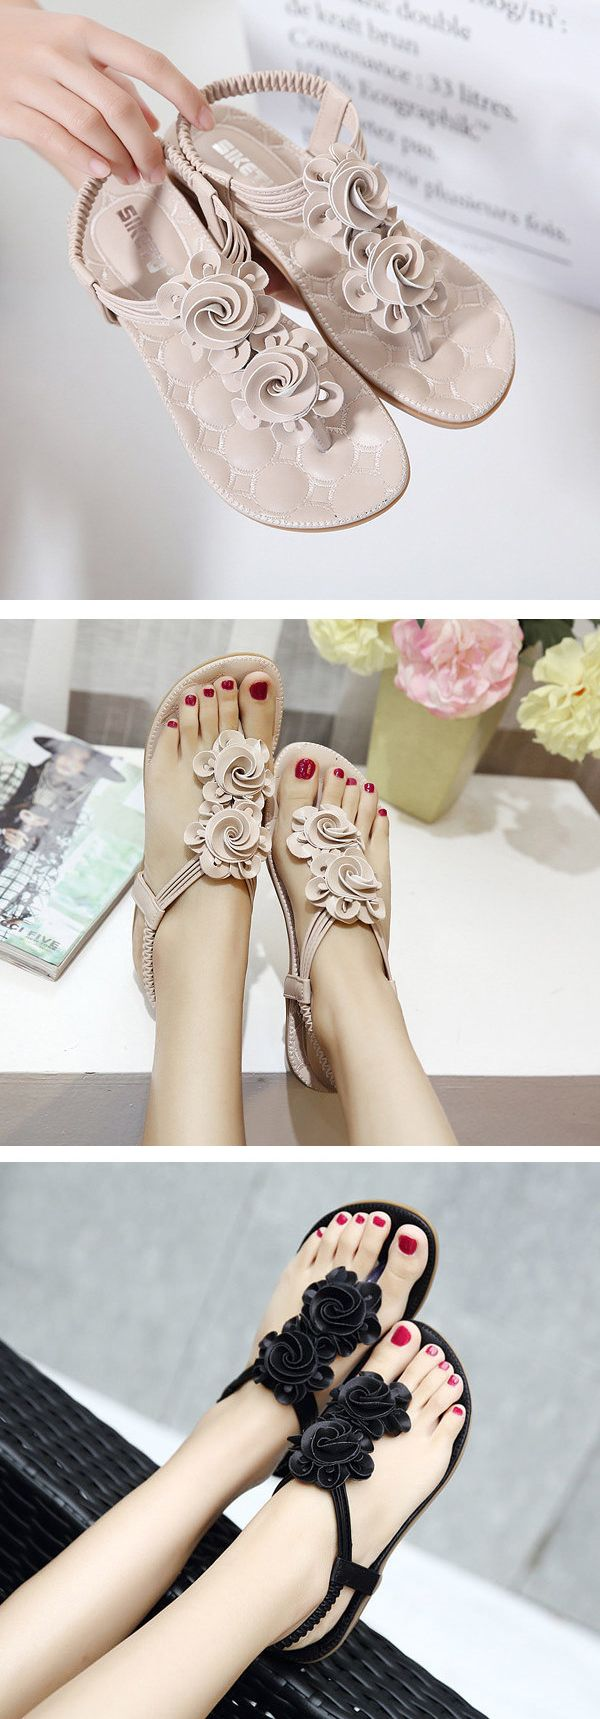 US$17.66 Flower Bohemia Clip Toe Elastic Flat Sandals For Women_Women Flat Sandals_Women Summer Shoes